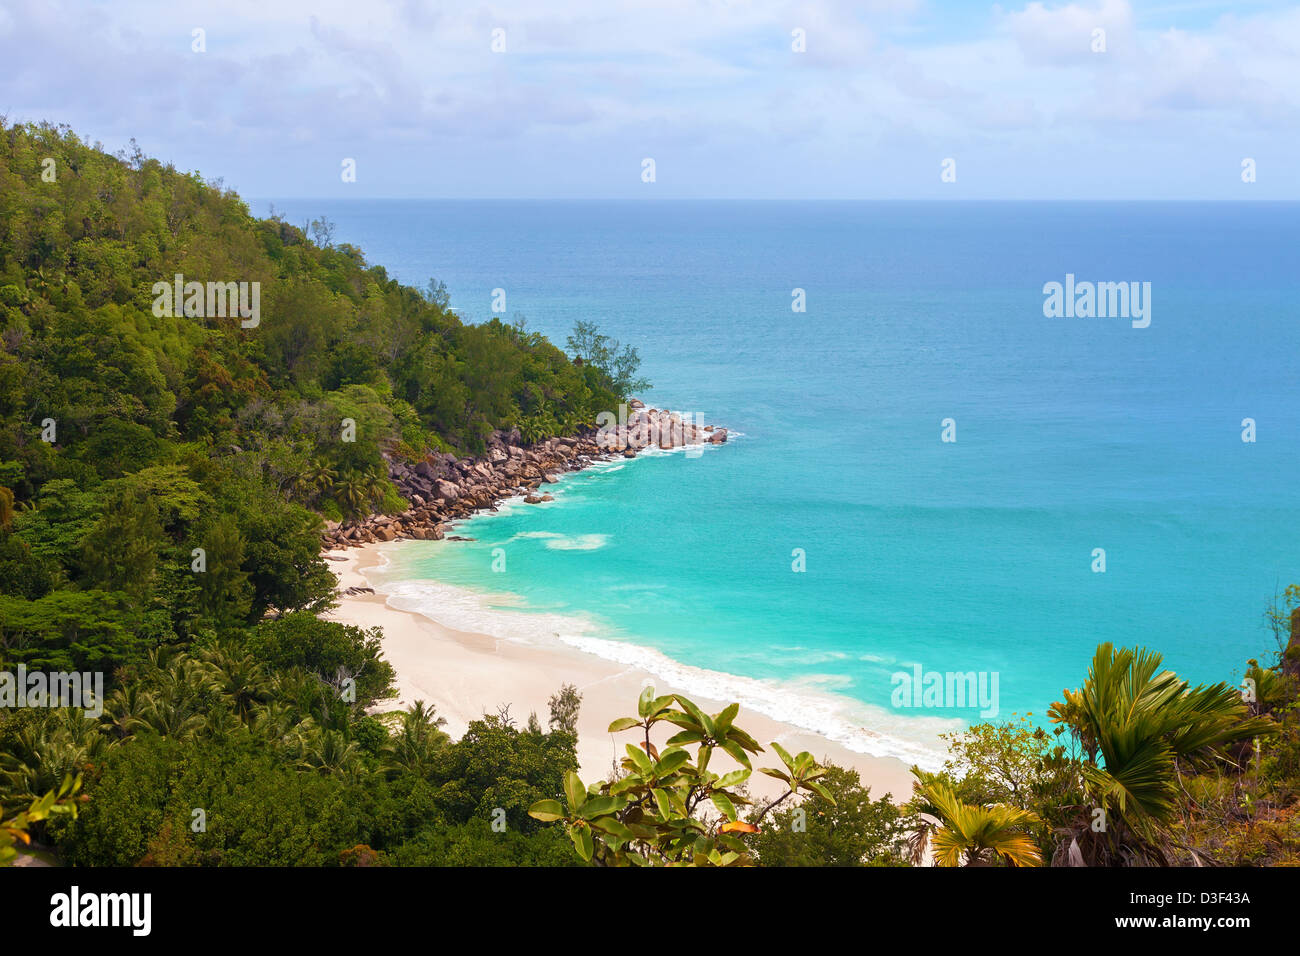 Seashore of Anse Georgette beach from above, Seychelles Stock Photo